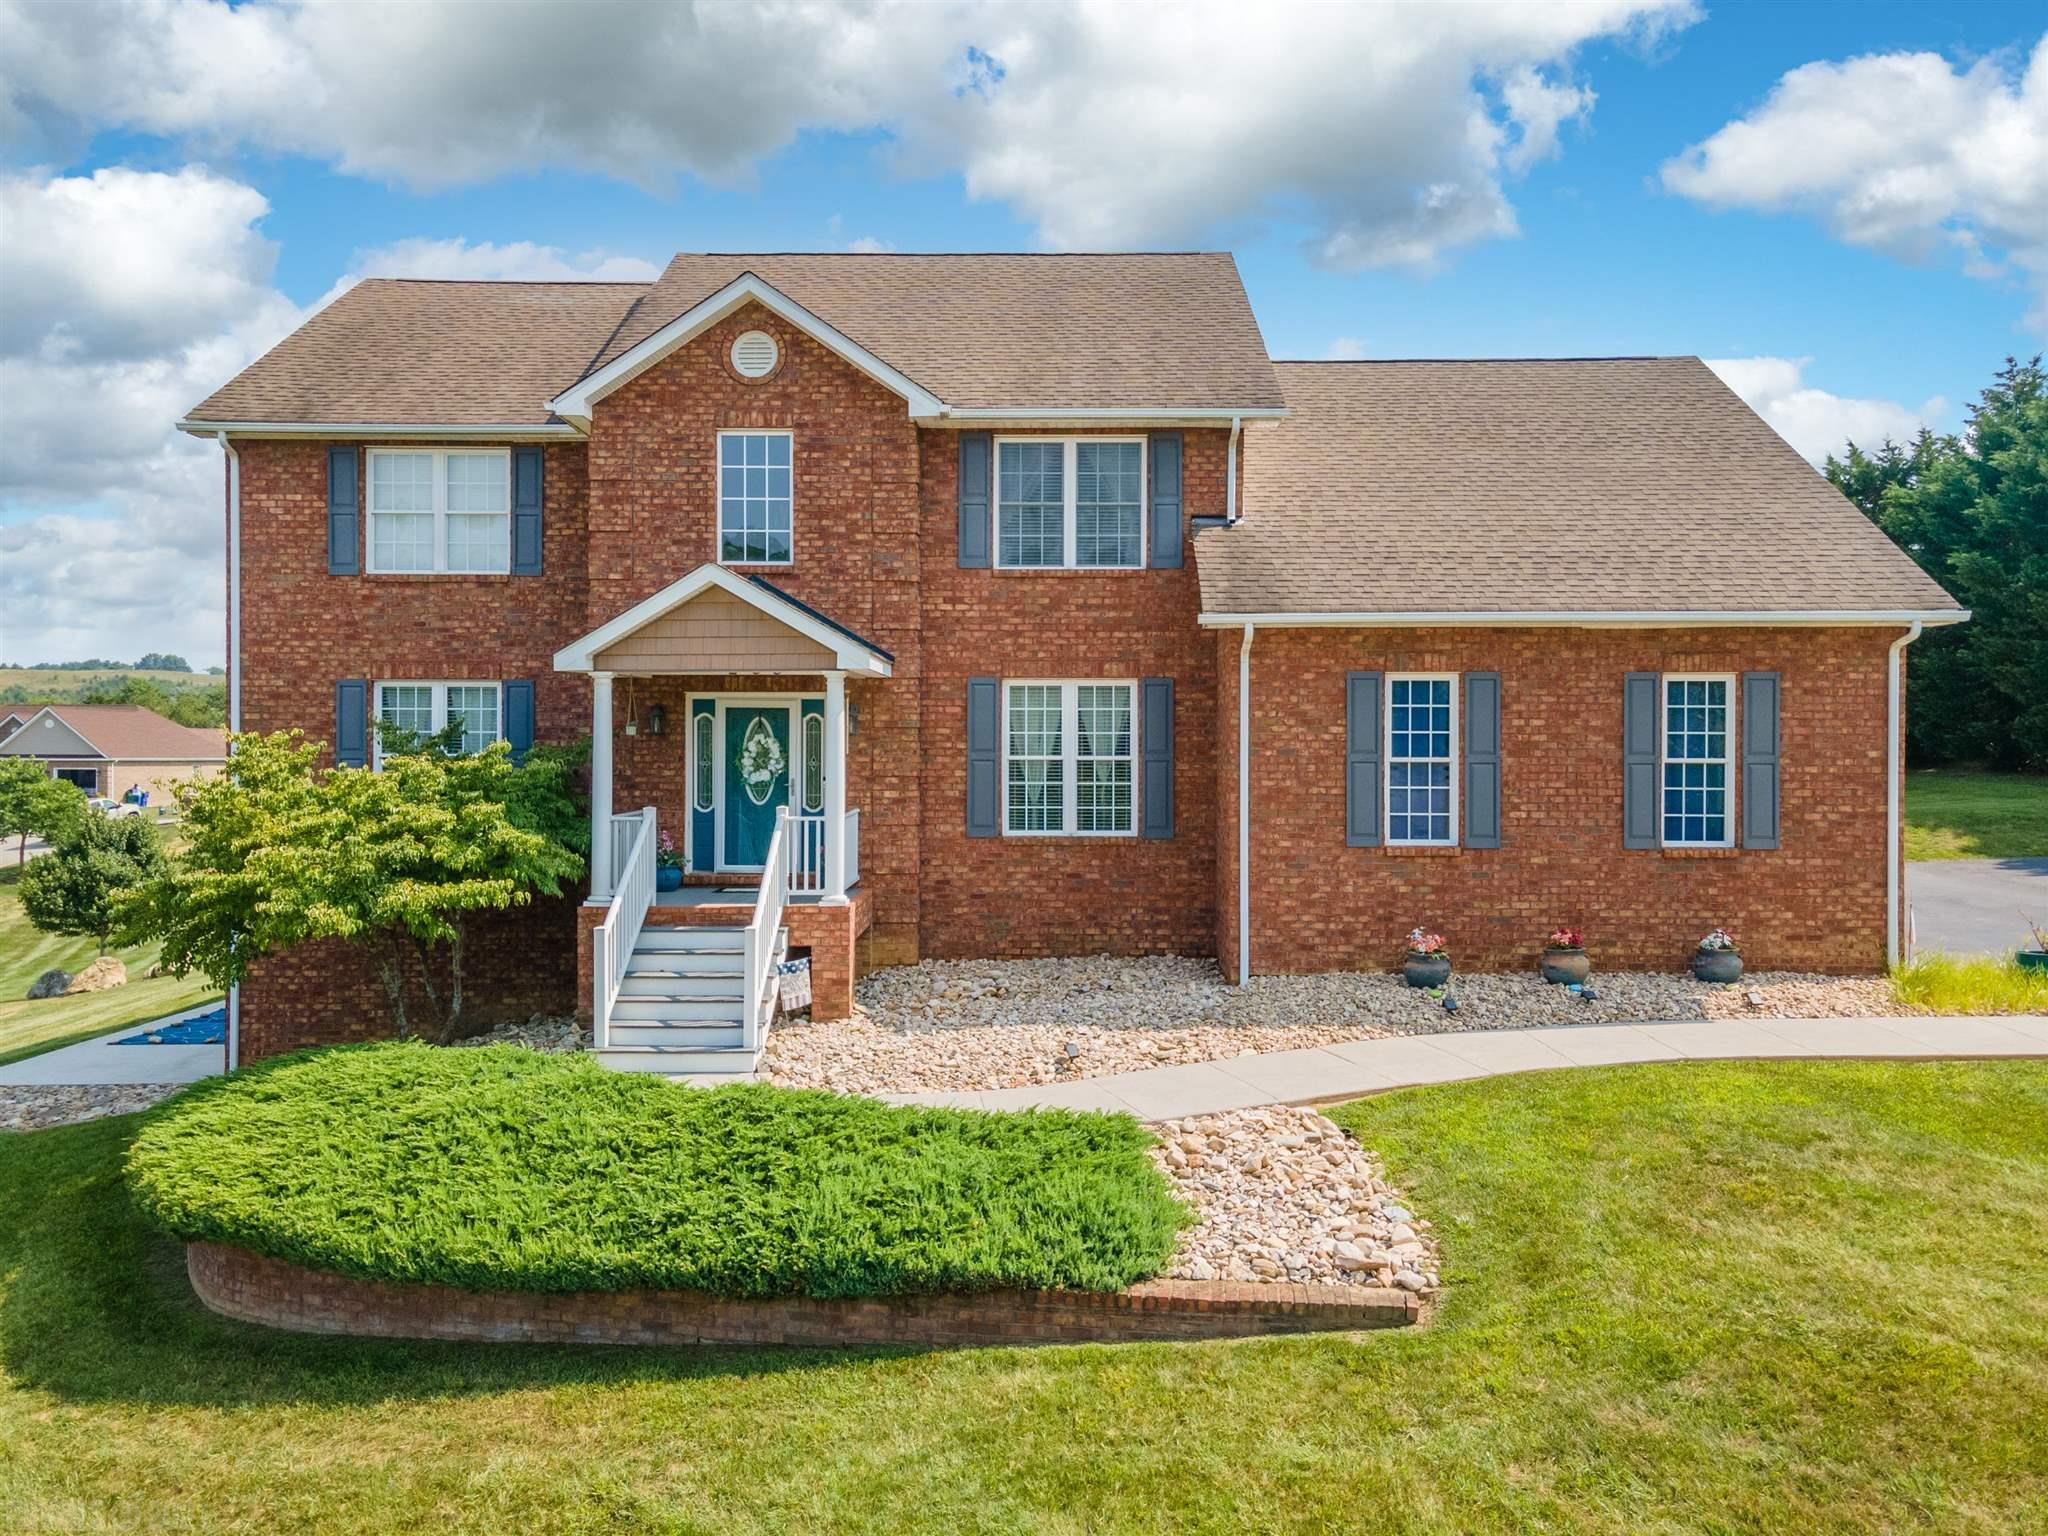 This immaculate 2 story brick home is located in the coveted Windmill Hills subdivision. Home boasts of Large Family Room with Cathedral Ceilings & Nine Foot Ceilings on first level. Main level features a full bath with an office that could be a 4th bedroom suite. Stunning hardwood floors abound throughout the main level- Den, Family Room, Kitchen and Formal Dining Room. Second level features the owner's suite with full bath and ample closet storage! Additional full bath on second level and two additional bedrooms. 285 Alder features a full walkout basement area and ready to expand/finish! This home is close to shopping, dining, Blacksburg, Virginia Tech, the interstate and much more! Schedule a showing today!